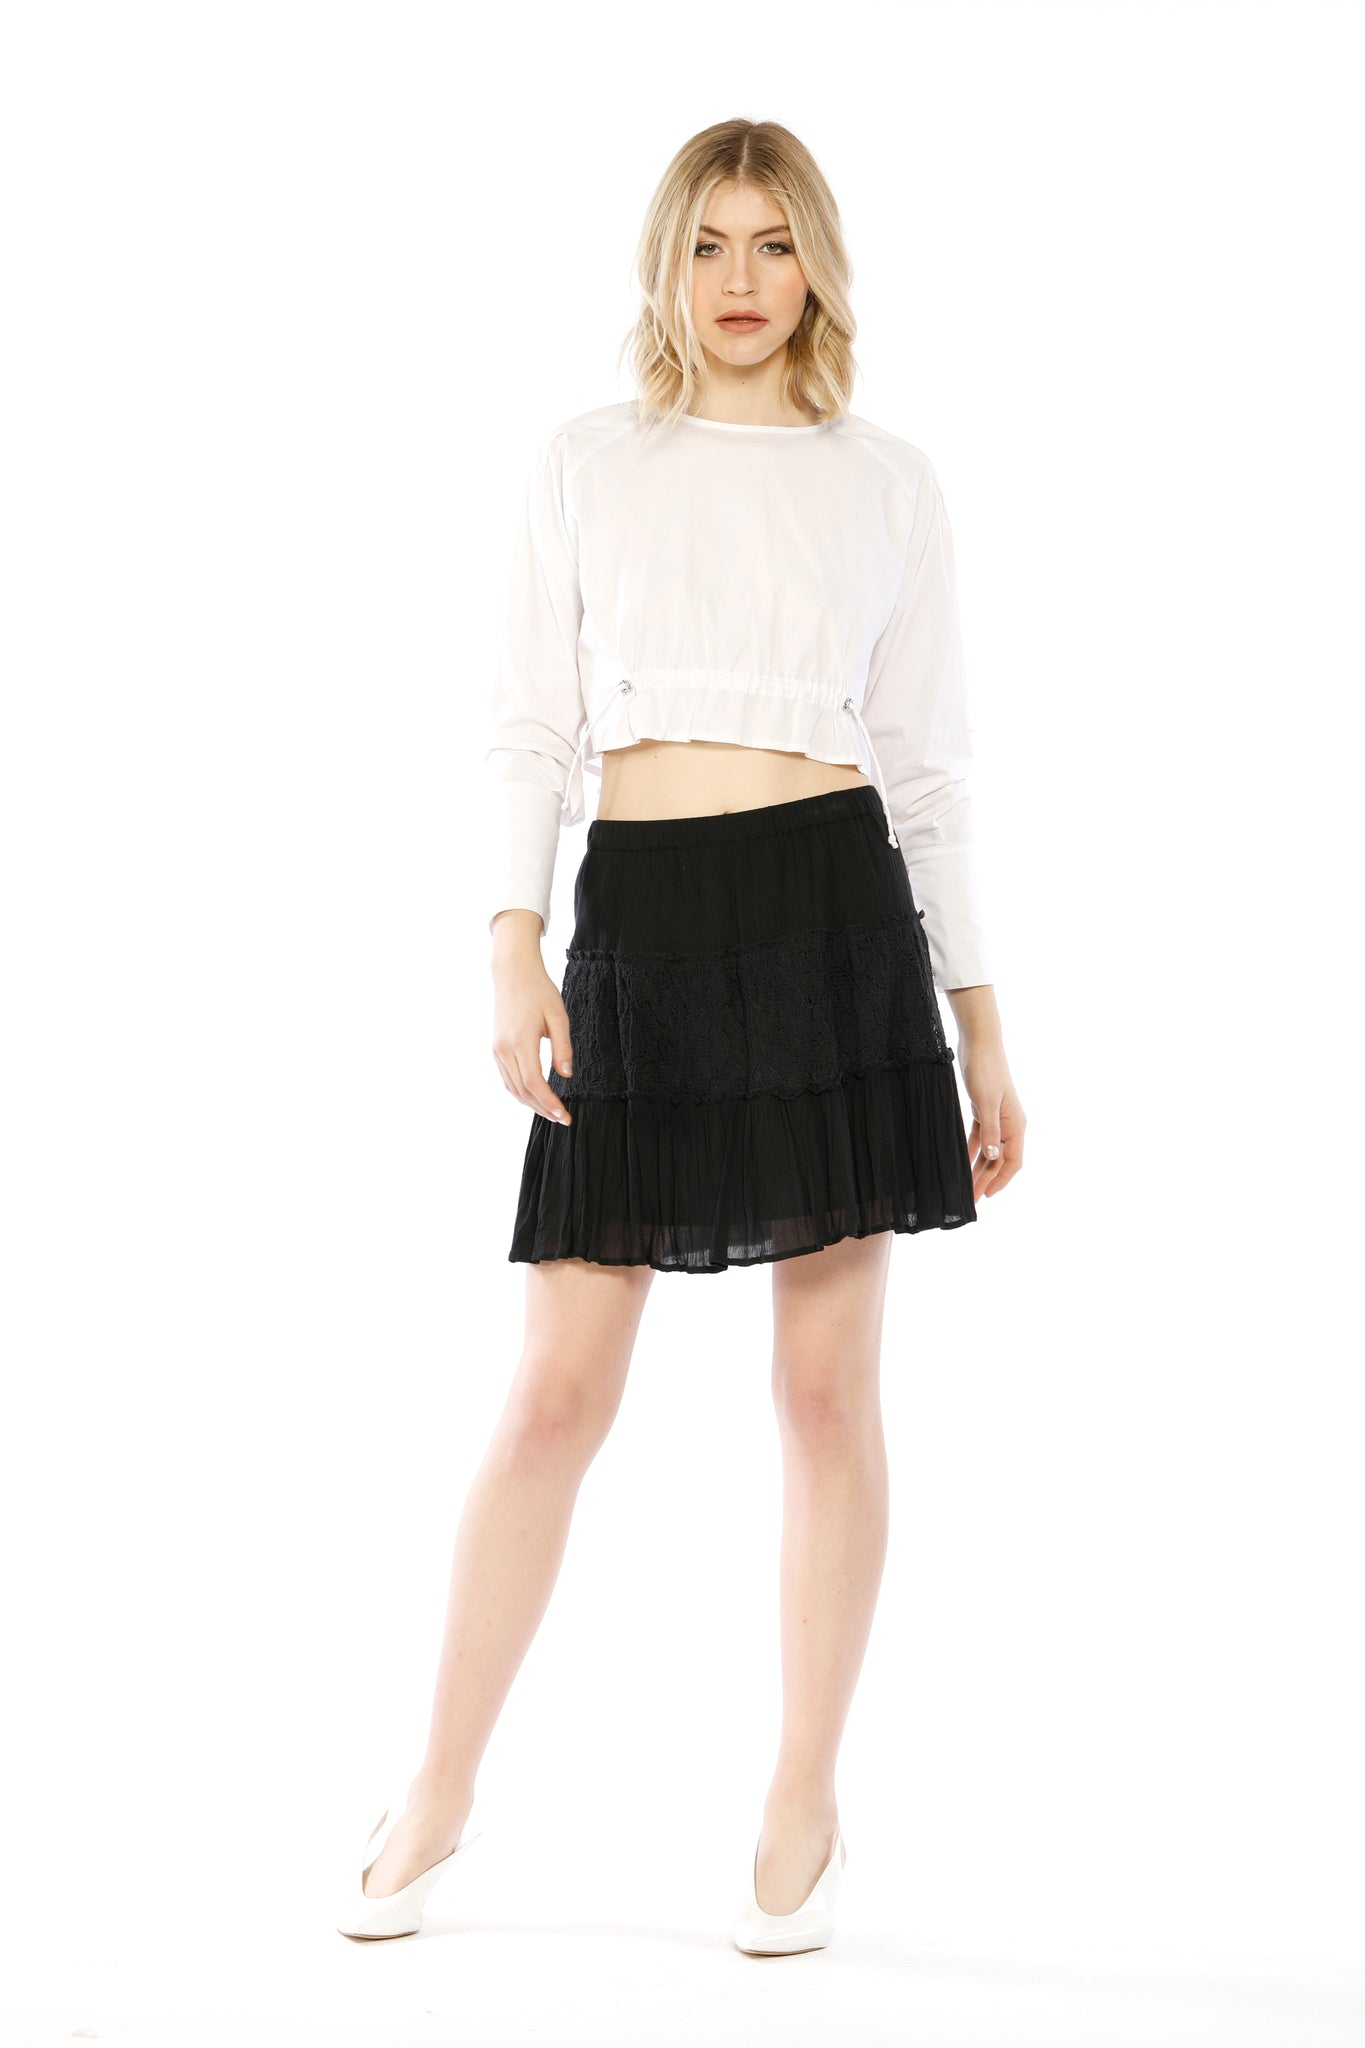 Front view (pose) of Fin Skirt, black skirt with layered frills and ruffles. 100% cotton and machine-washable